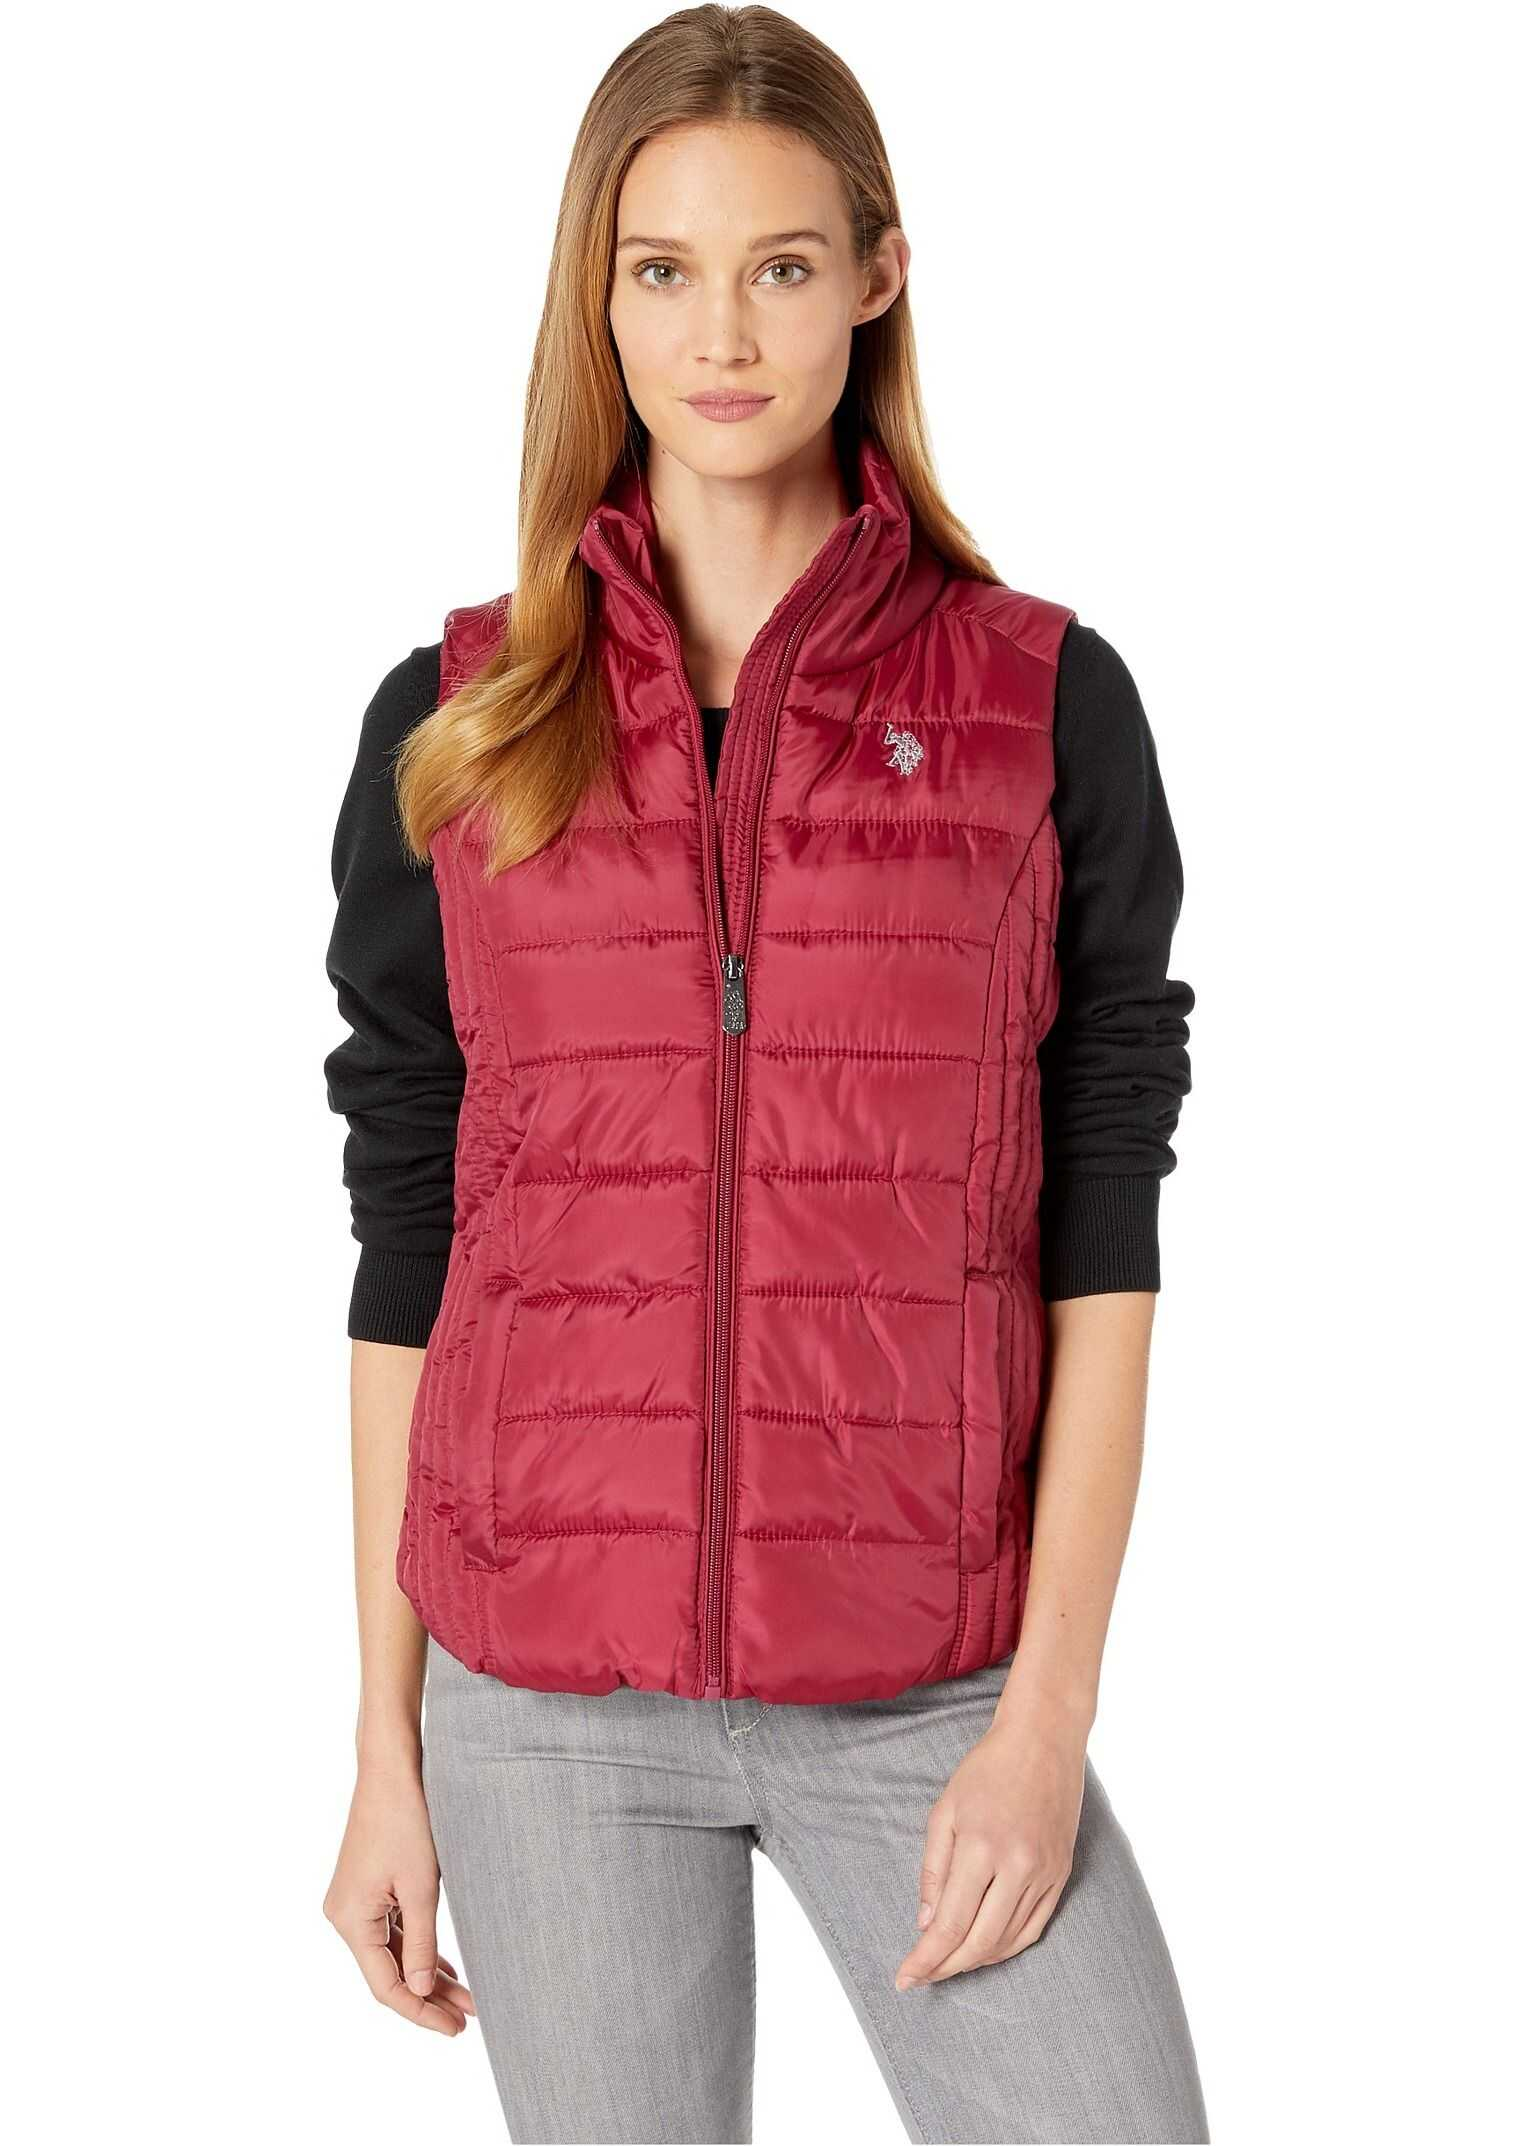 U.S. POLO ASSN. Basic Vest Rose Thicket